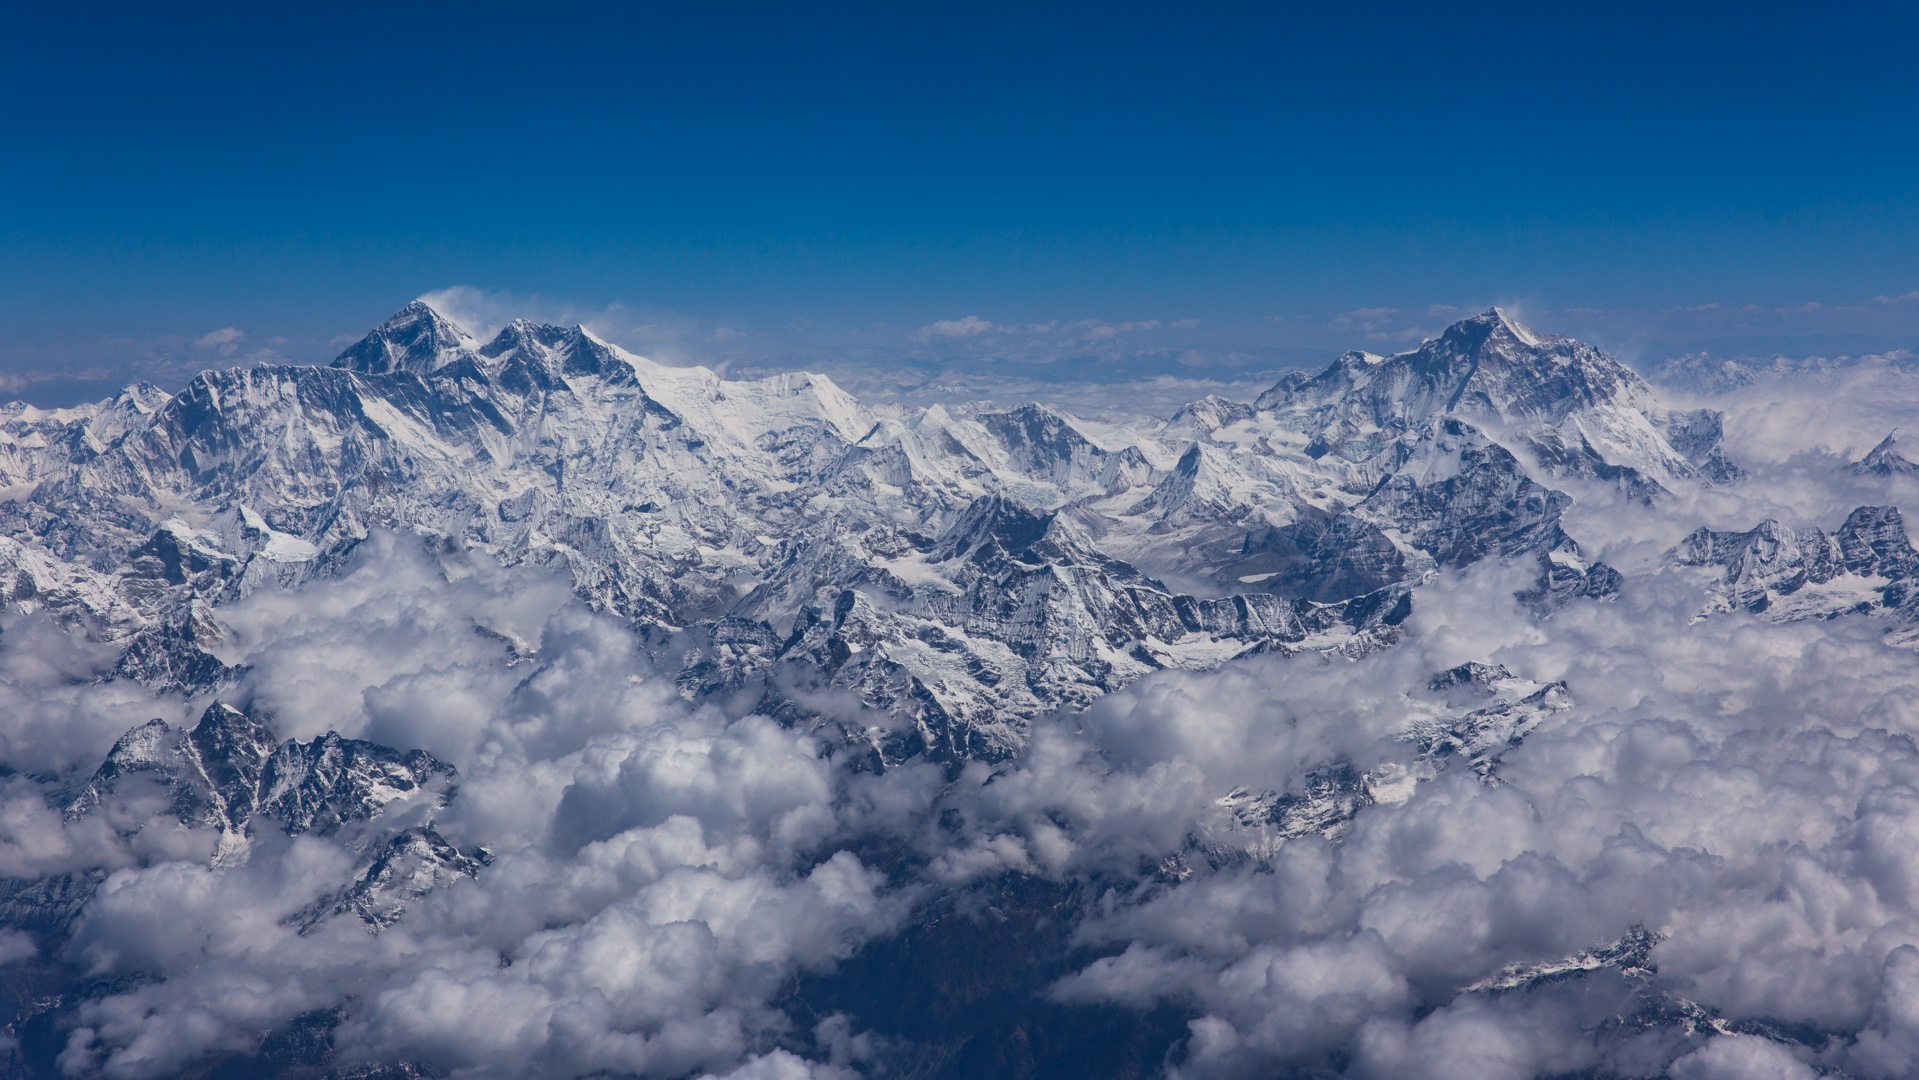 DO_The_Himalayas_Lynda_McLeish